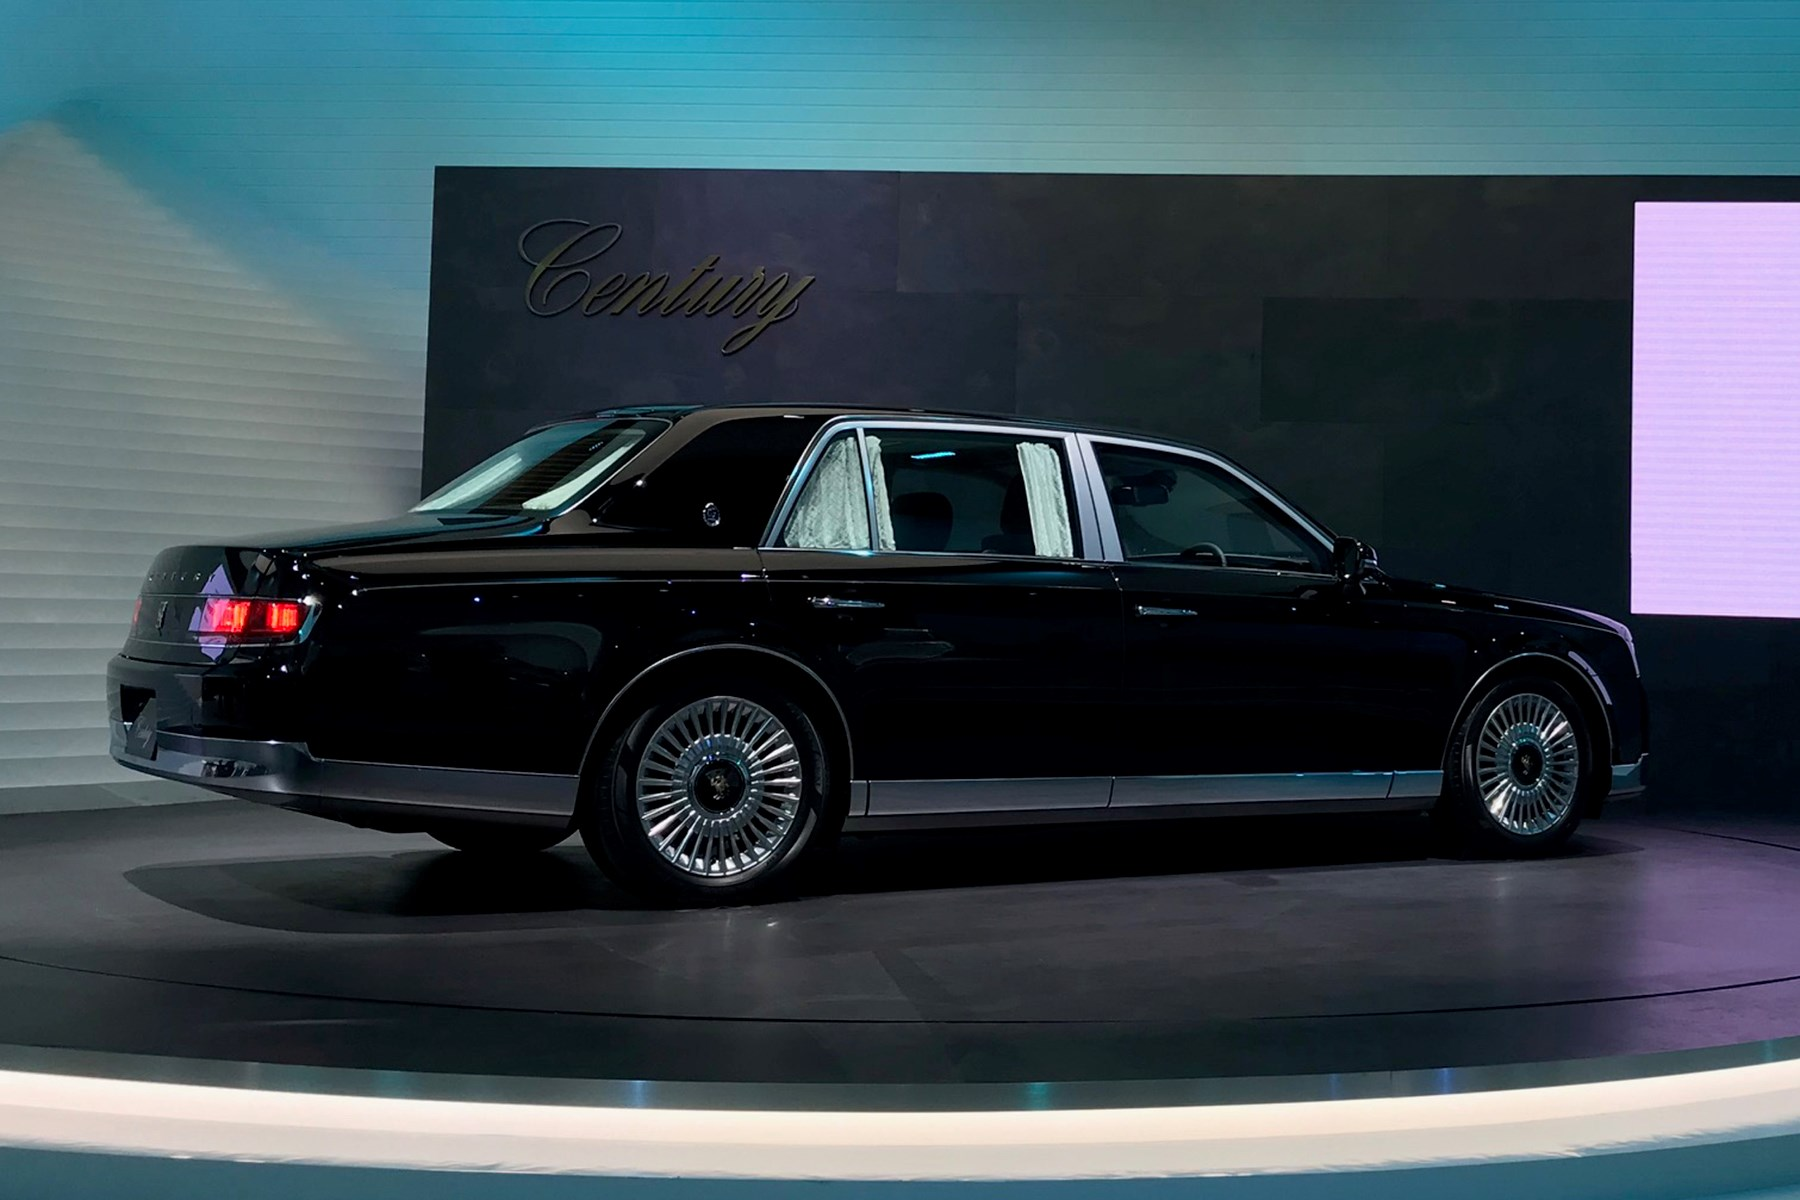 New Toyota Century Limousine Revealed At 2017 Tokyo Motor Show on first toyota camry